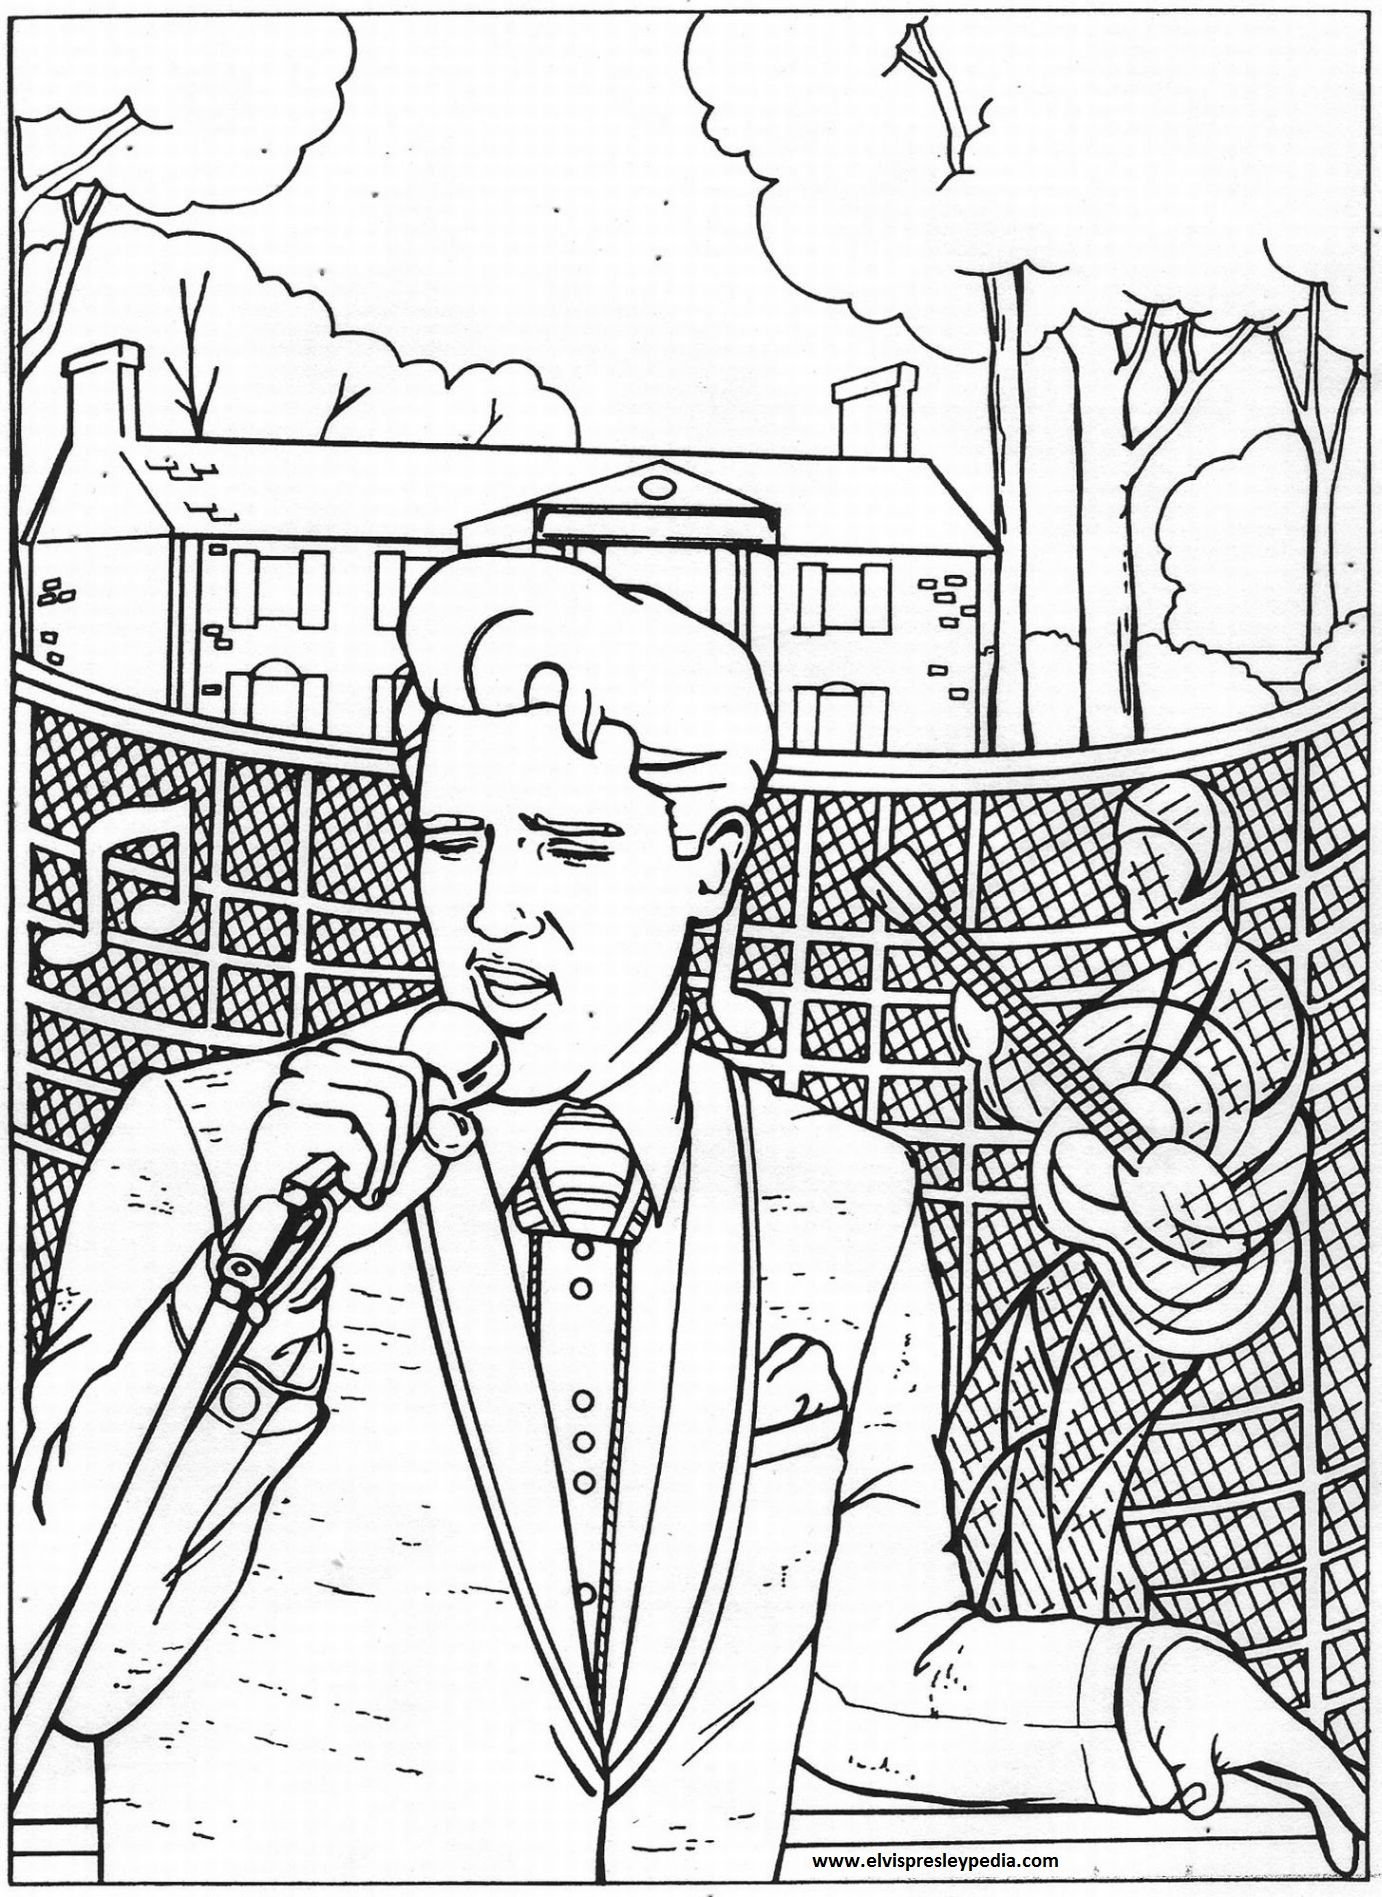 Coloring pages starfish intermediate -  2015 2016 In Memory Of Elvis Presley Elvis Presley Christmascoloring Sheetsadult